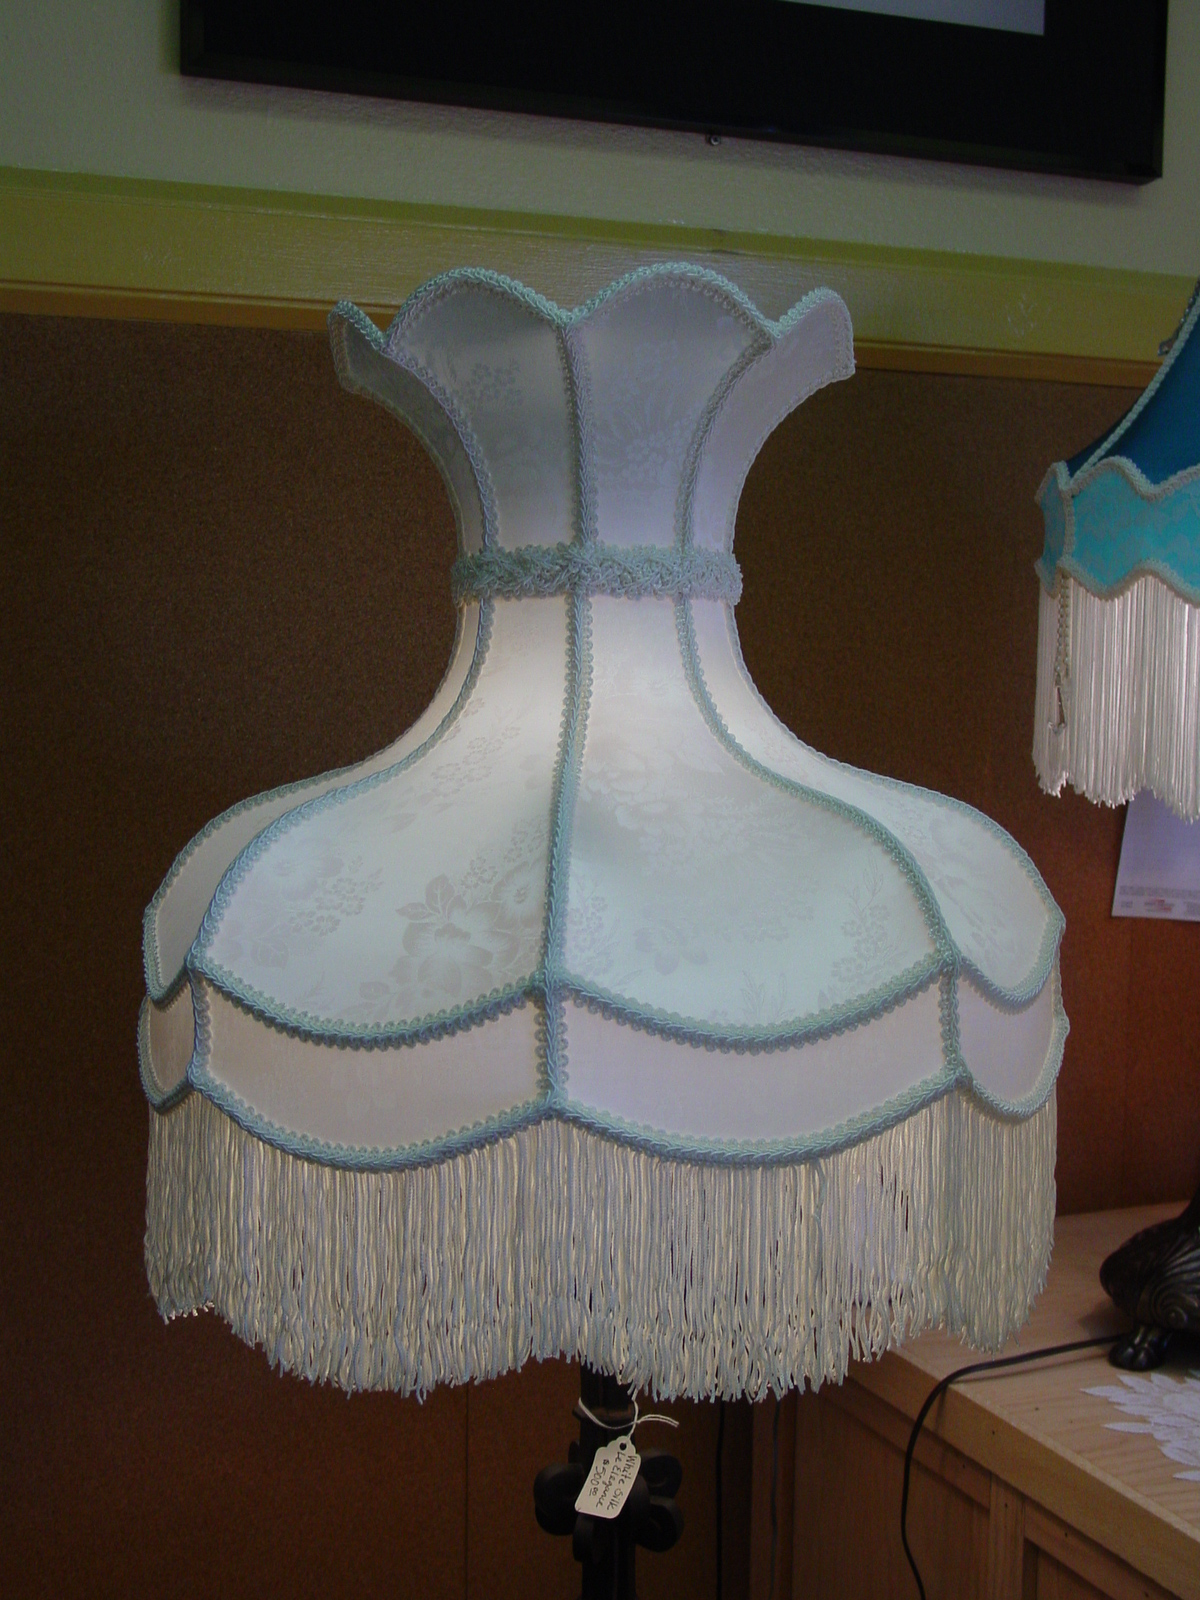 Old Fashioned Lamp Shade: Retro Lamp Shades Source. Stiffel Lamp Shades For The Original Vine Styles,Lighting